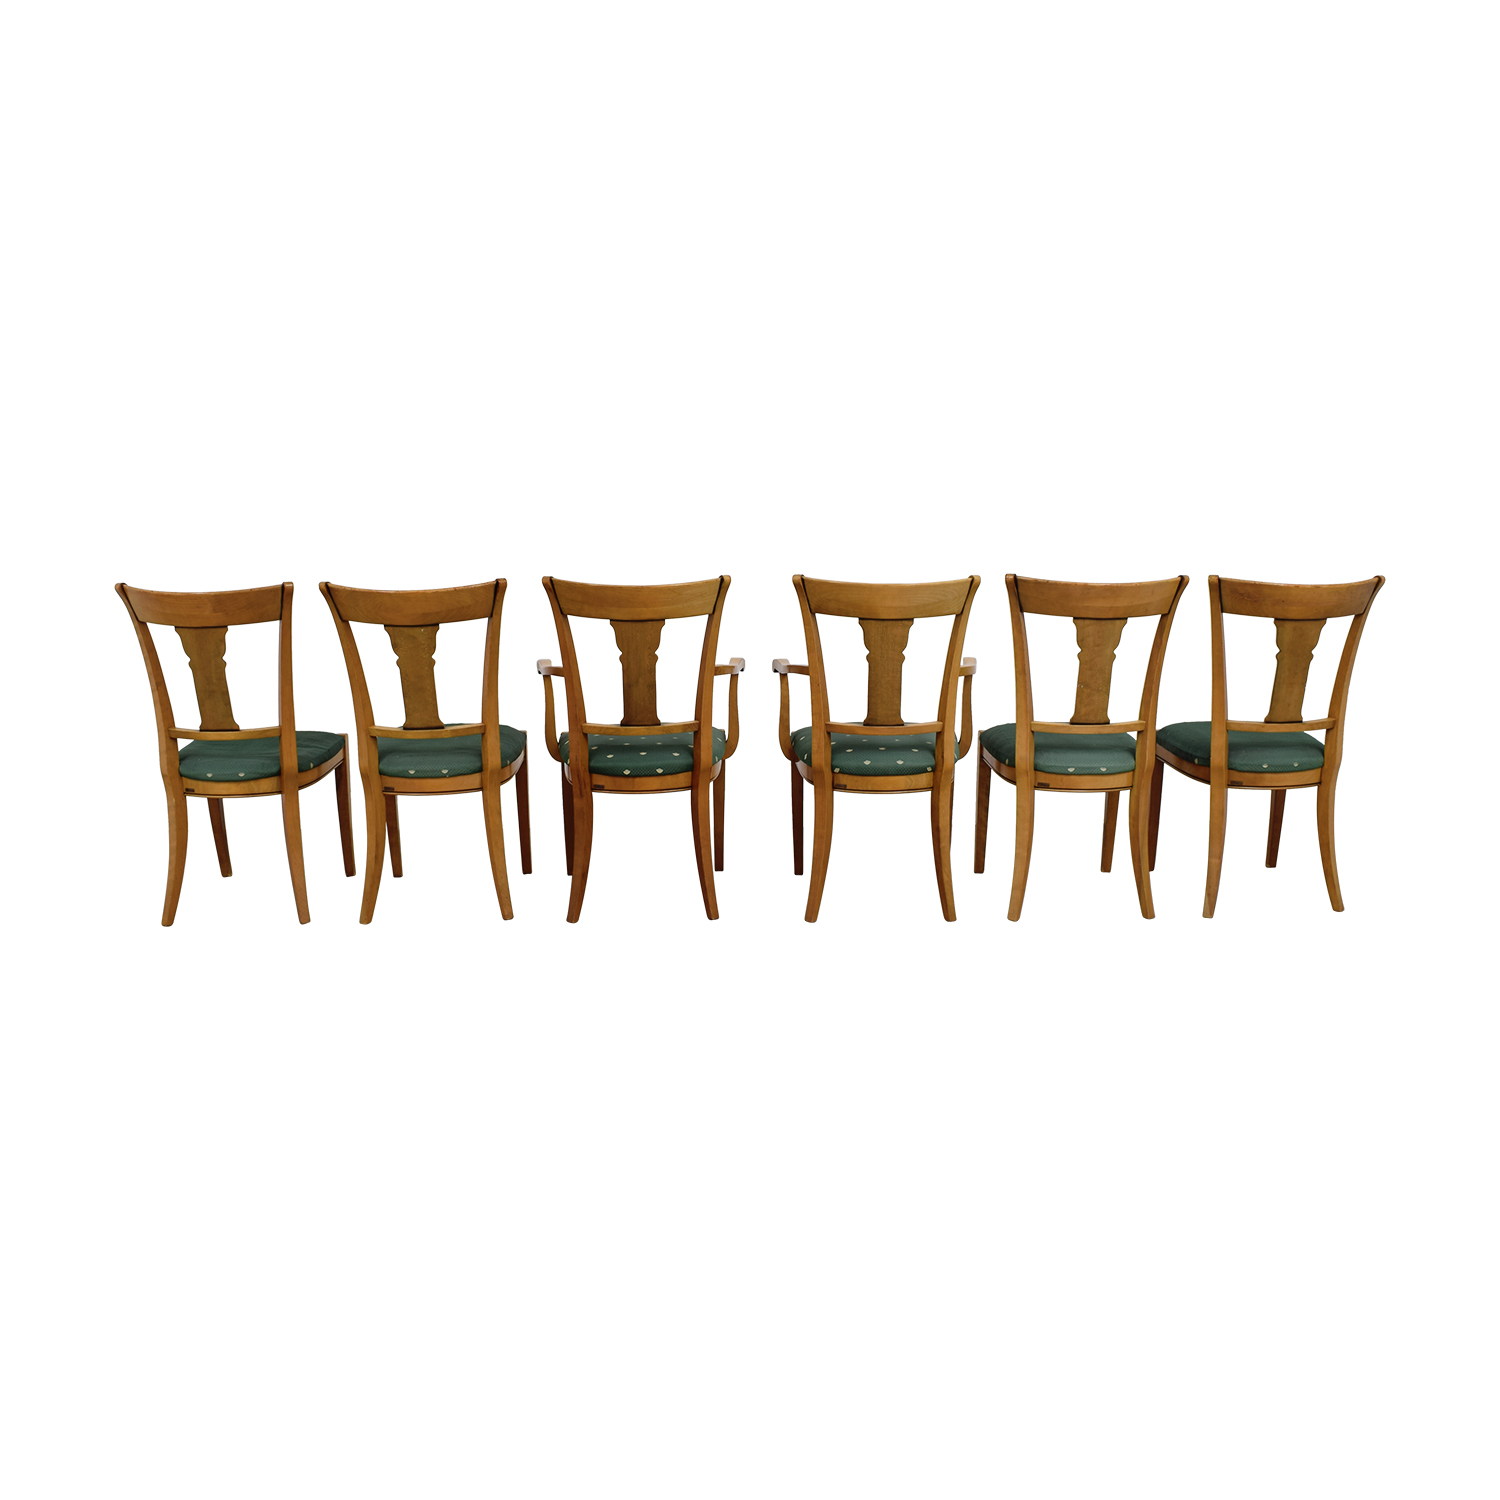 shop Grange Grange Rochambeau Green Upholstered Dining Chairs online